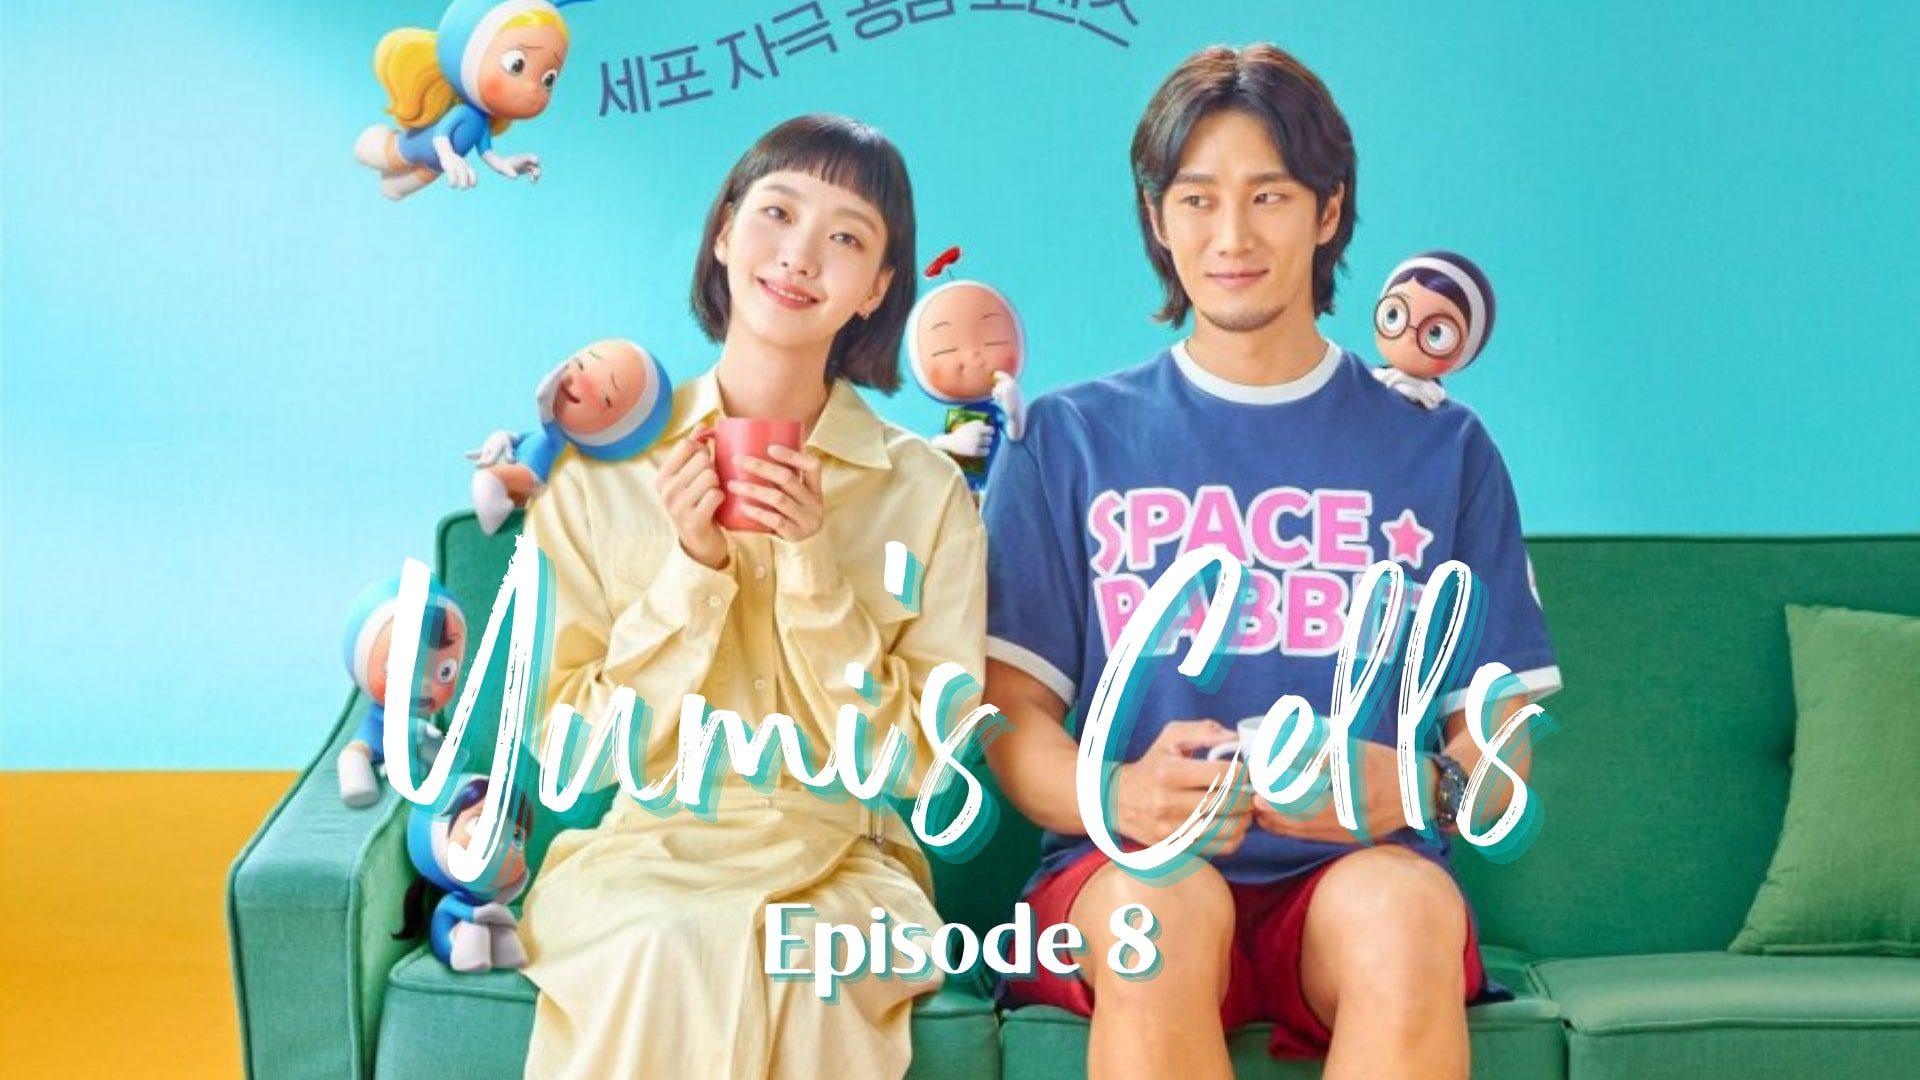 Yumi's Cells Episode 8